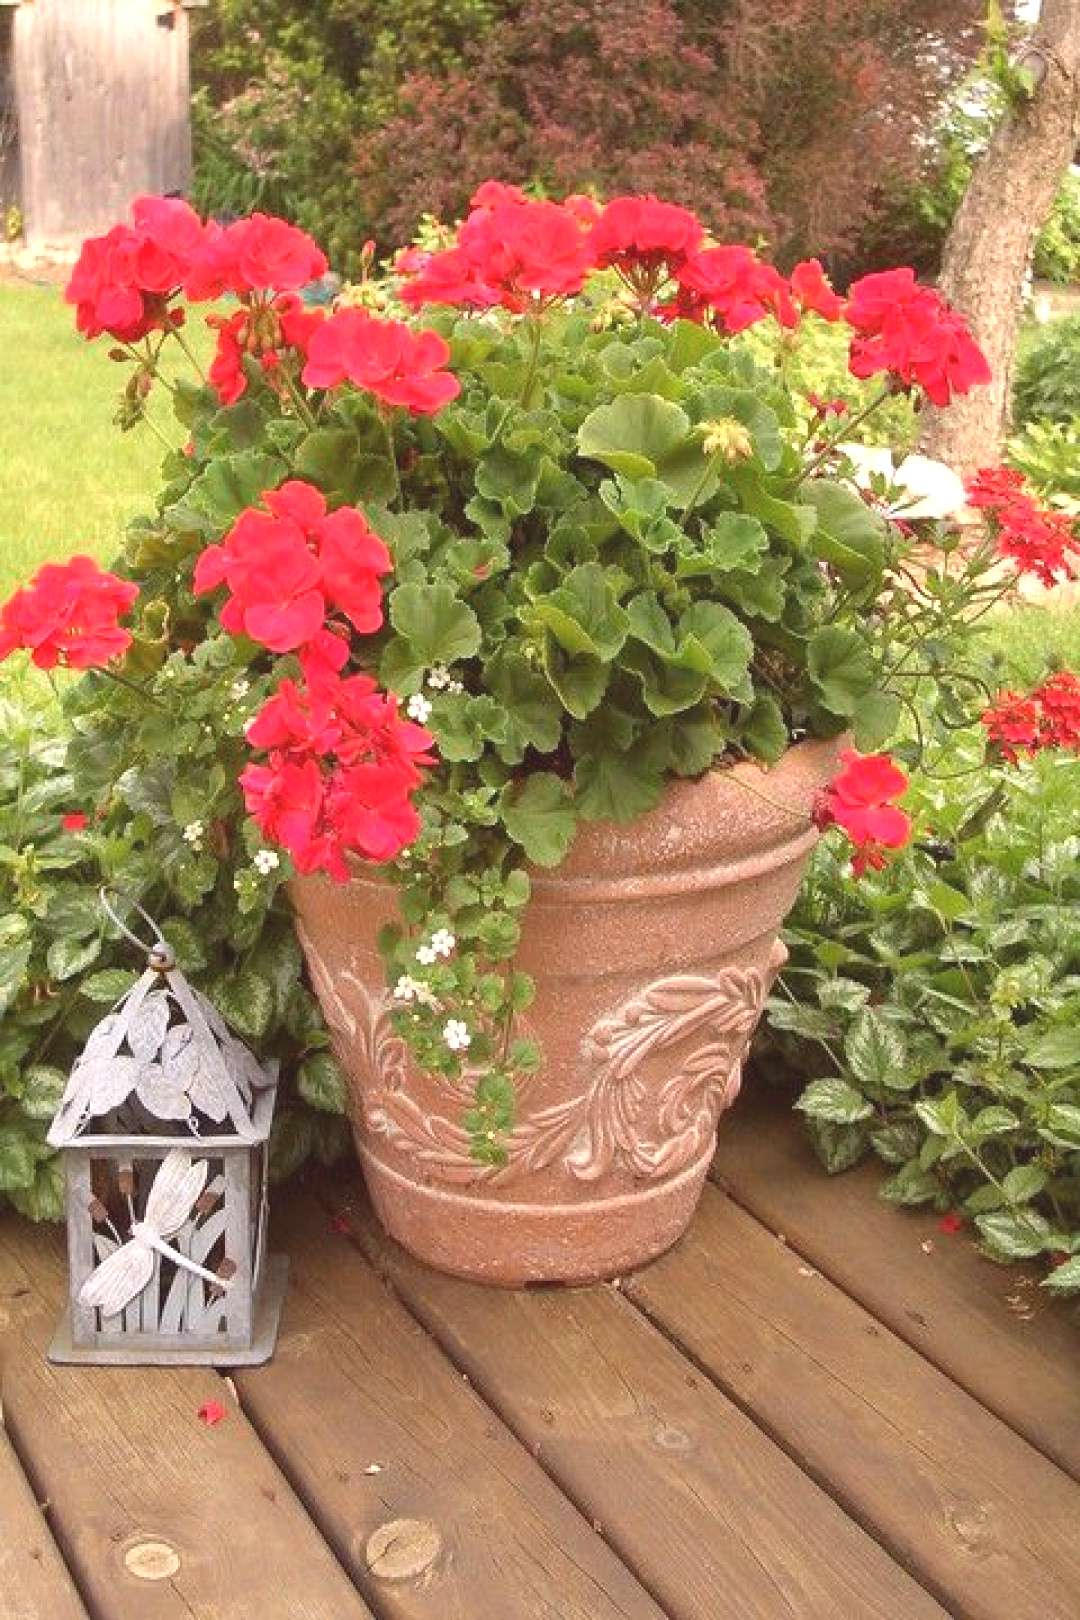 Red Geranium | Lovely red potted geranium and lantern | Shelly T. | Flickr